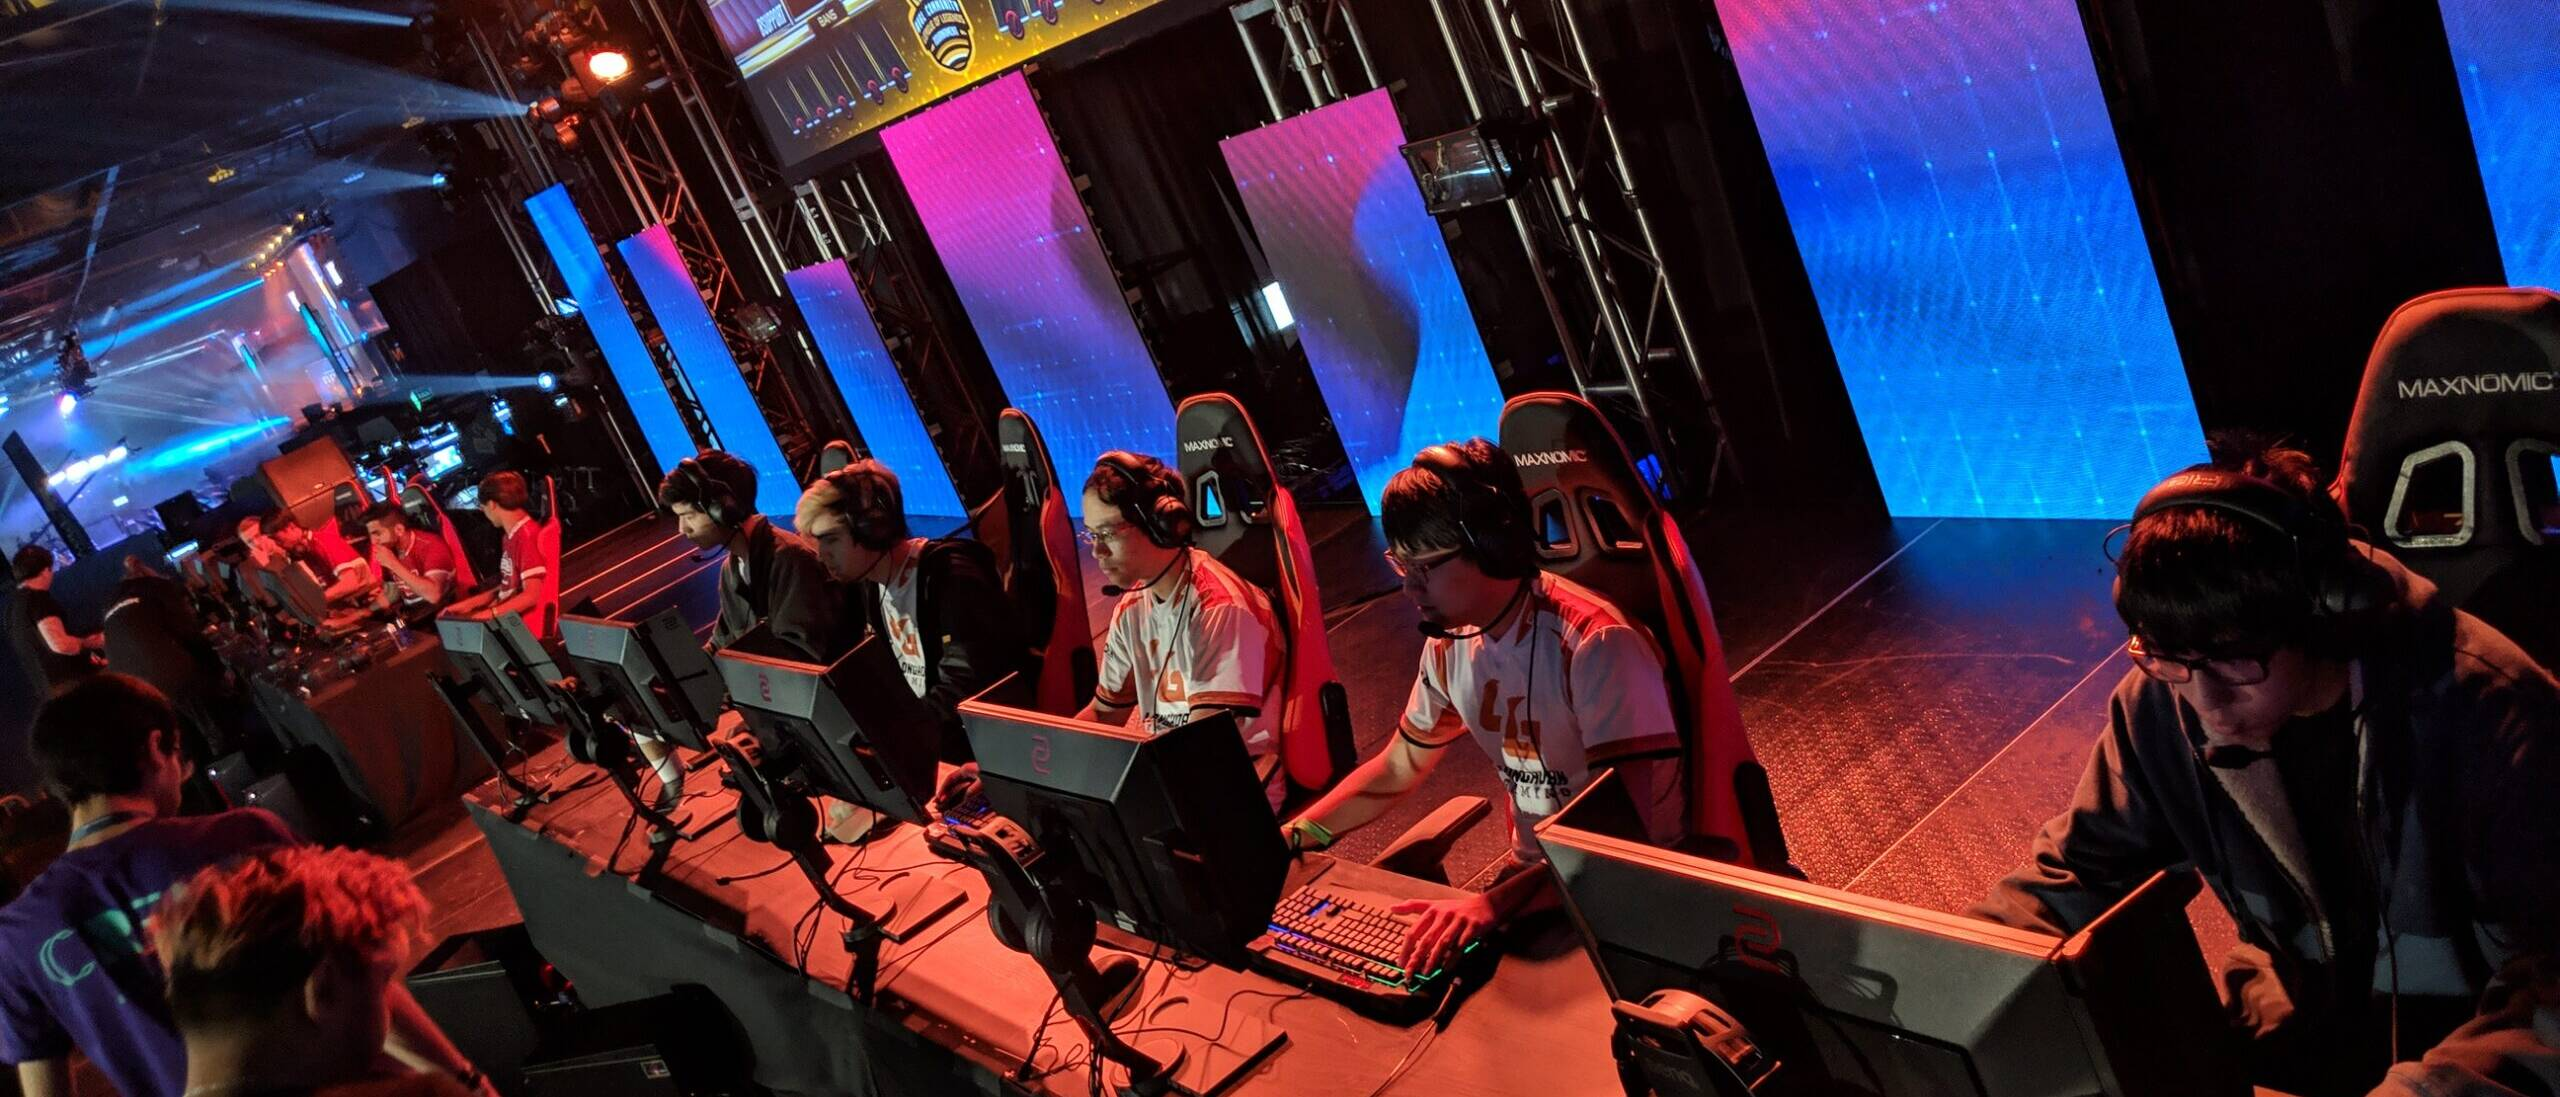 Longhorn Gaming team playing video games on computers on stage